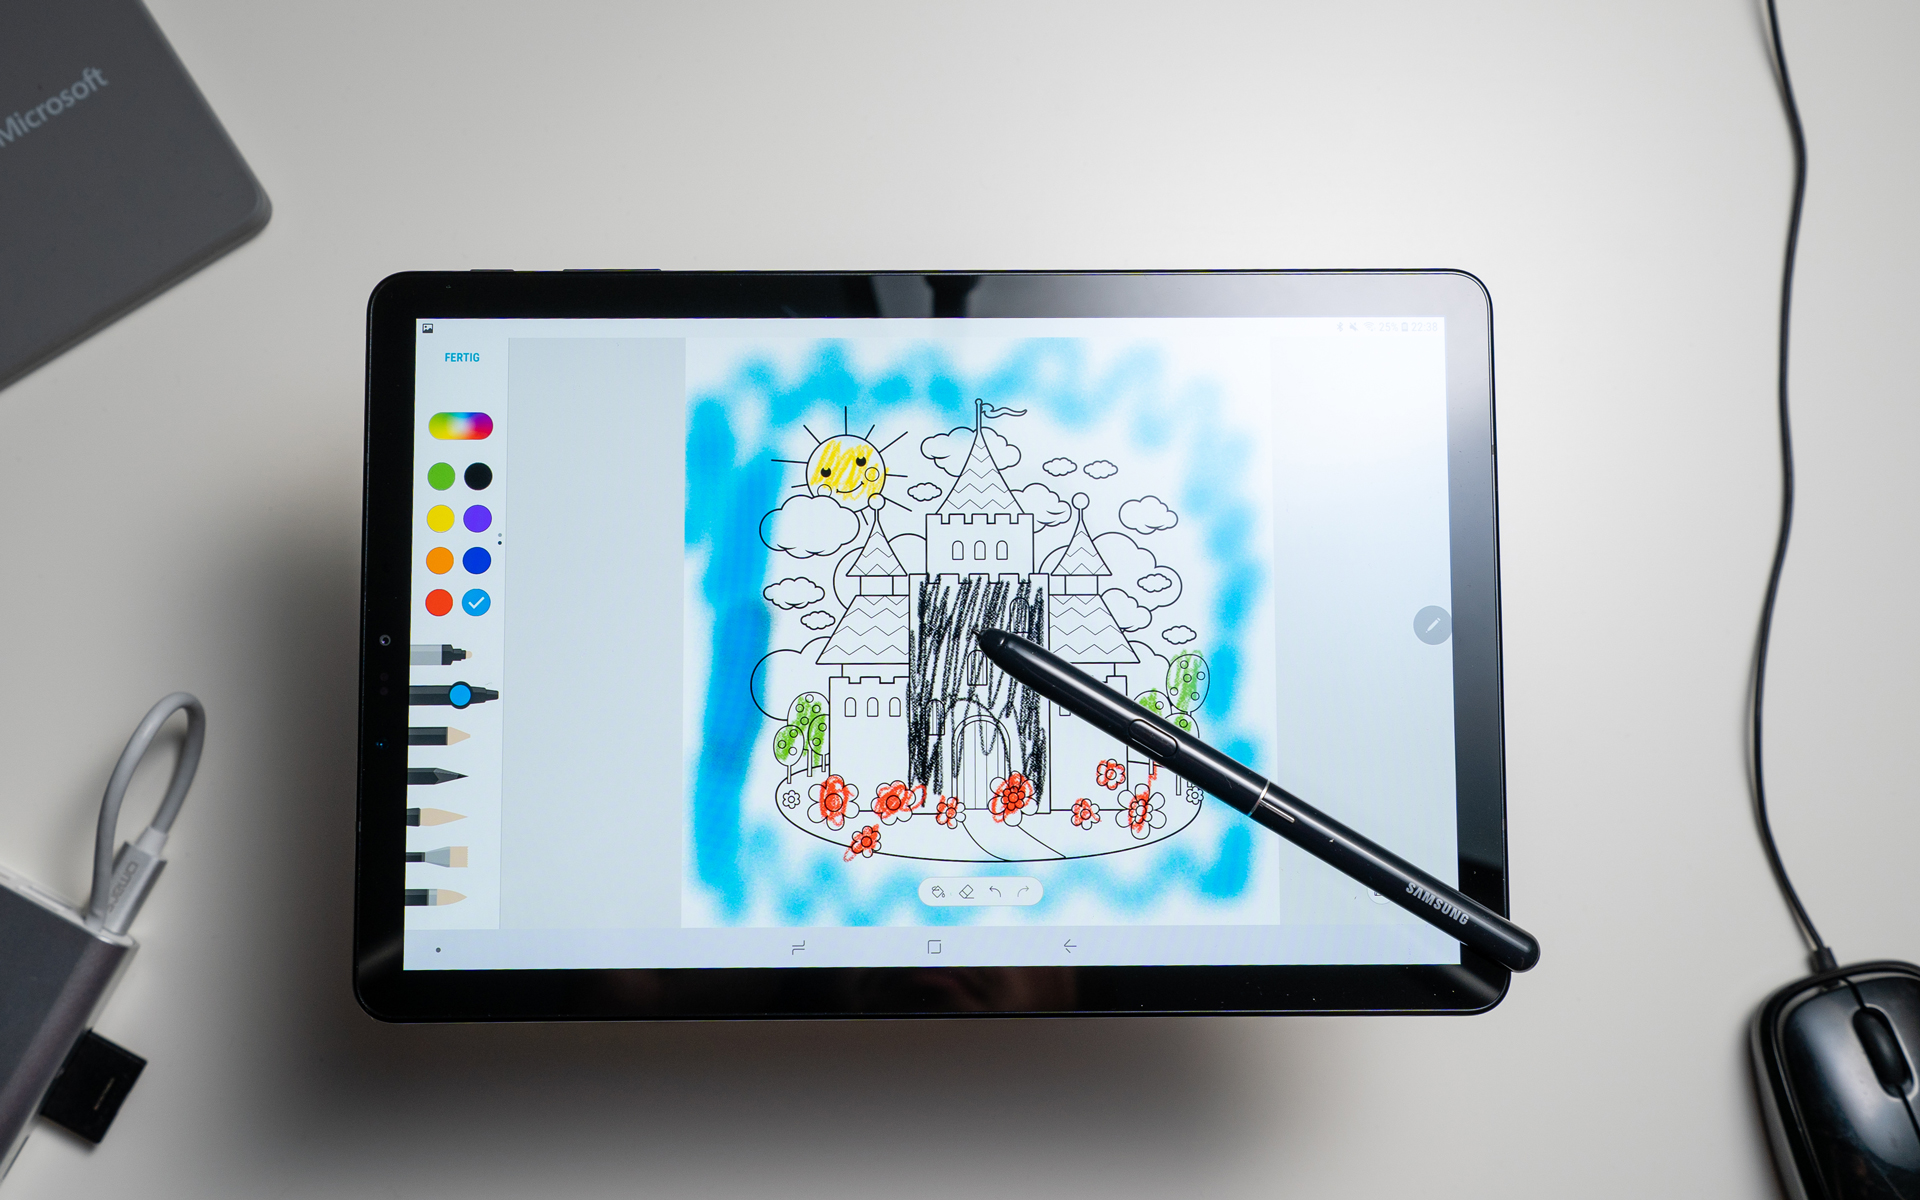 Does Samsung's Galaxy S4 tablet have stylus?